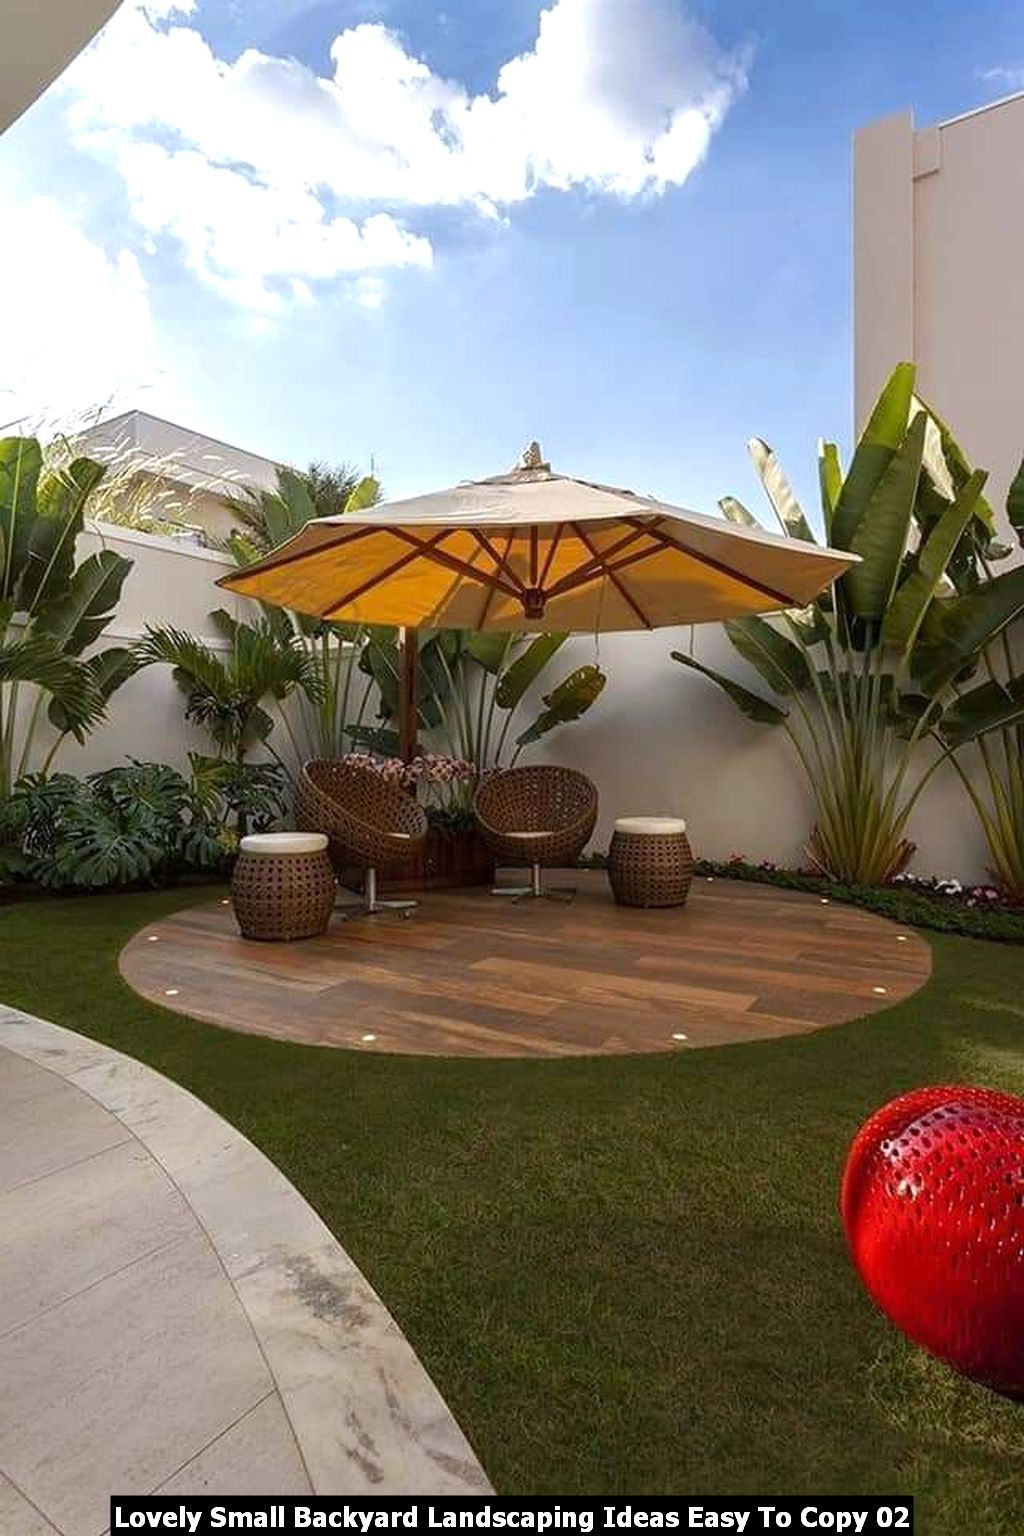 Lovely Small Backyard Landscaping Ideas Easy To Copy 02